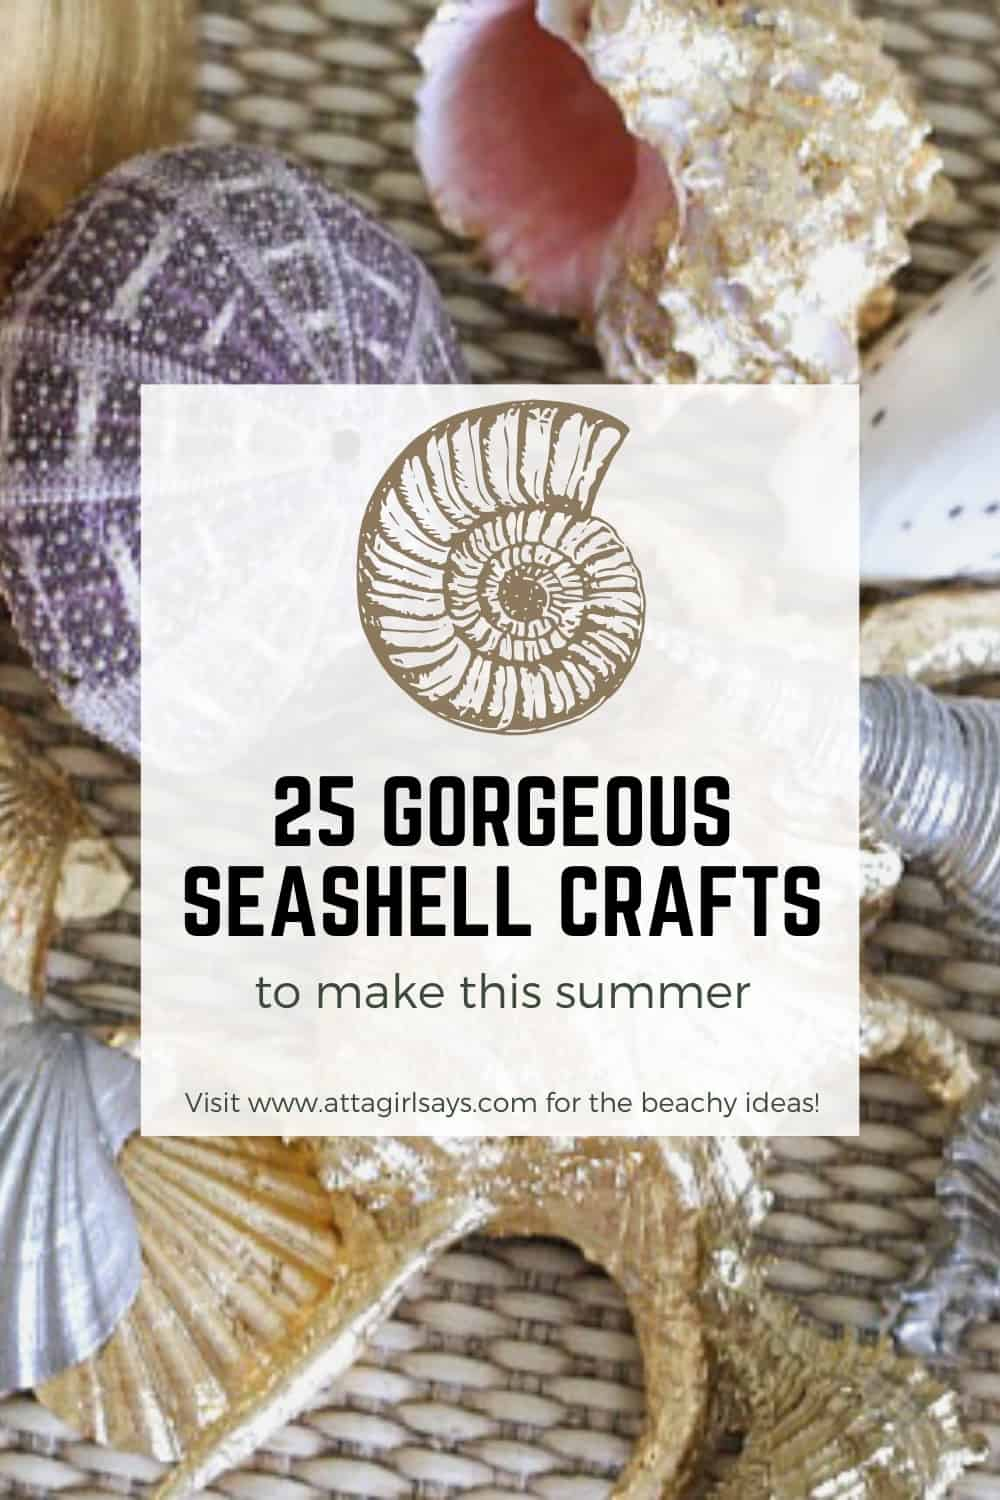 bowl of seashells with a text overlay